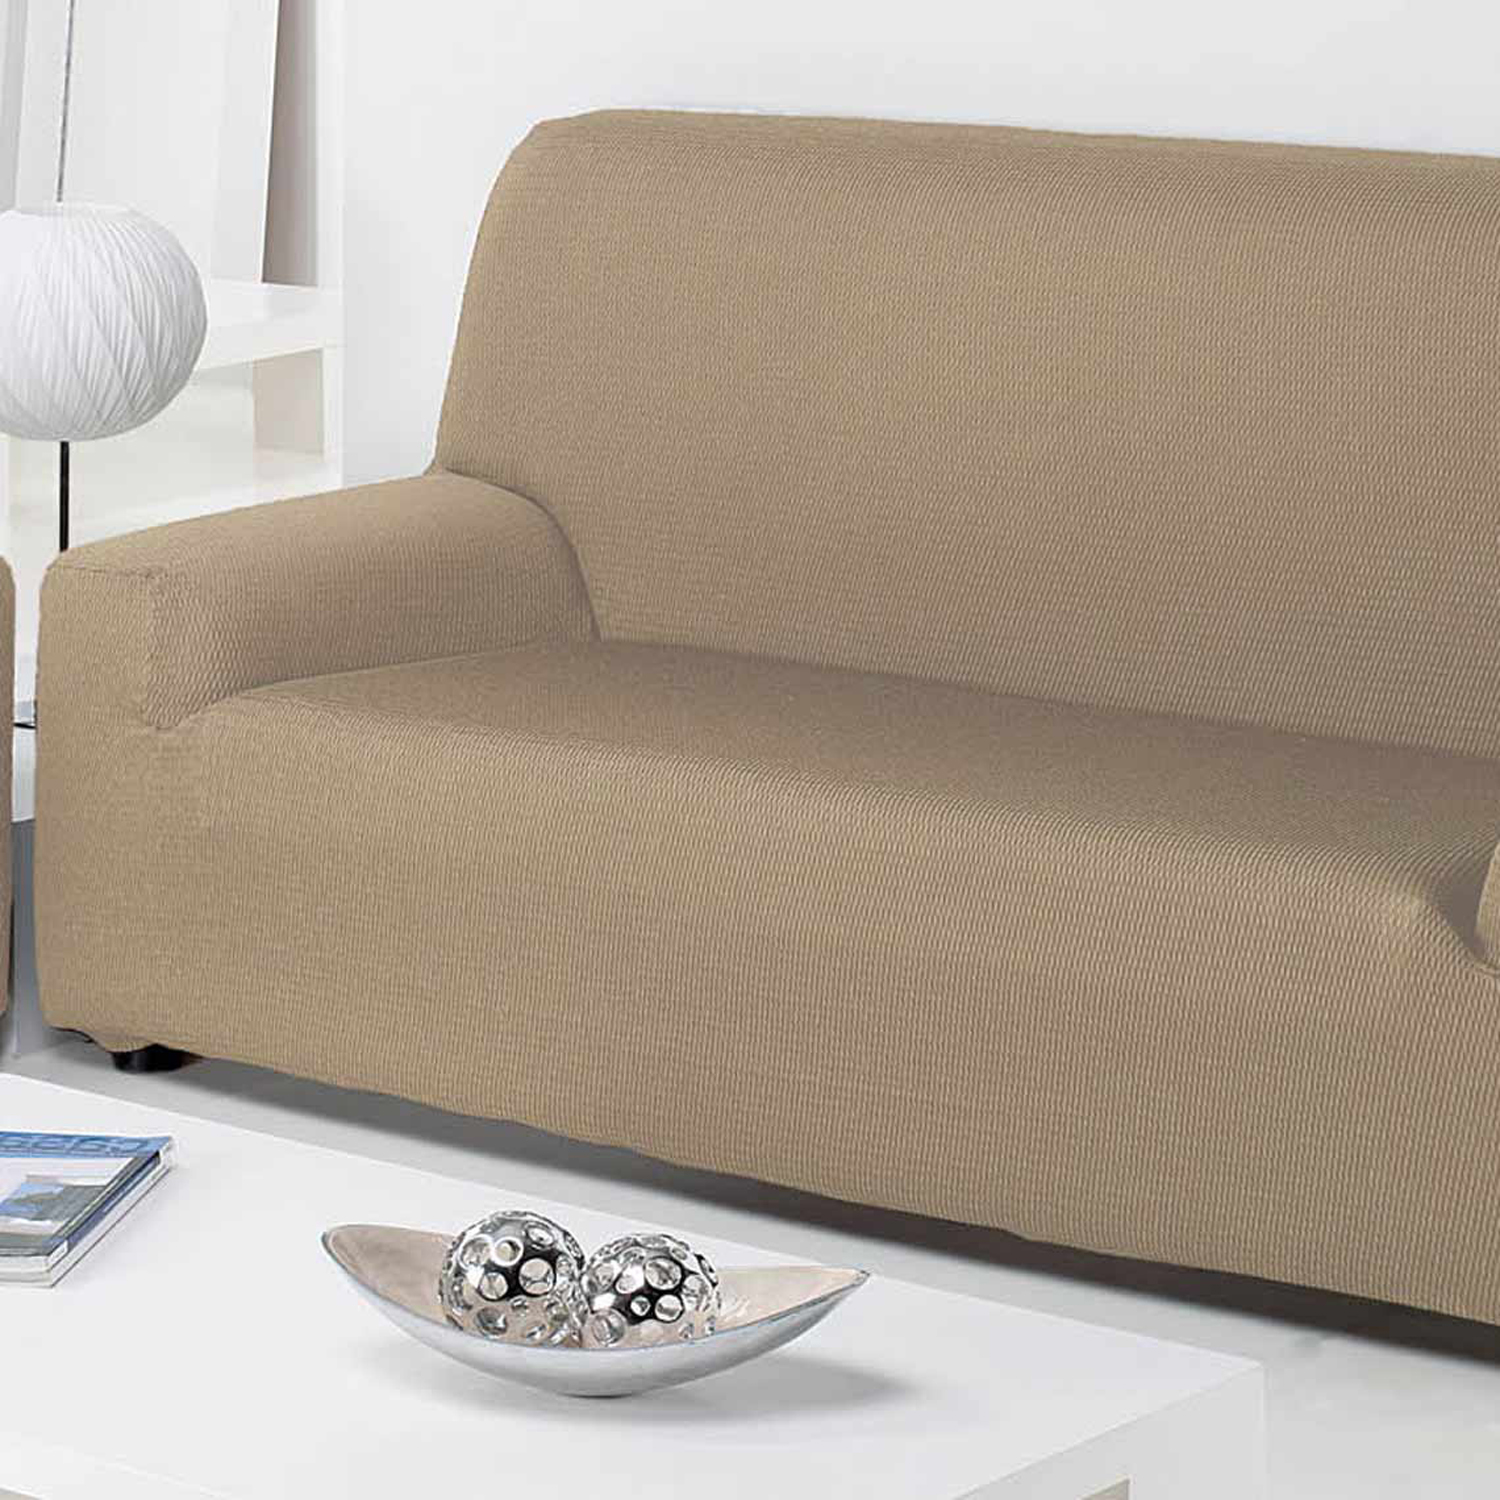 Easystretch 3 Seater Sofa Cover 056438